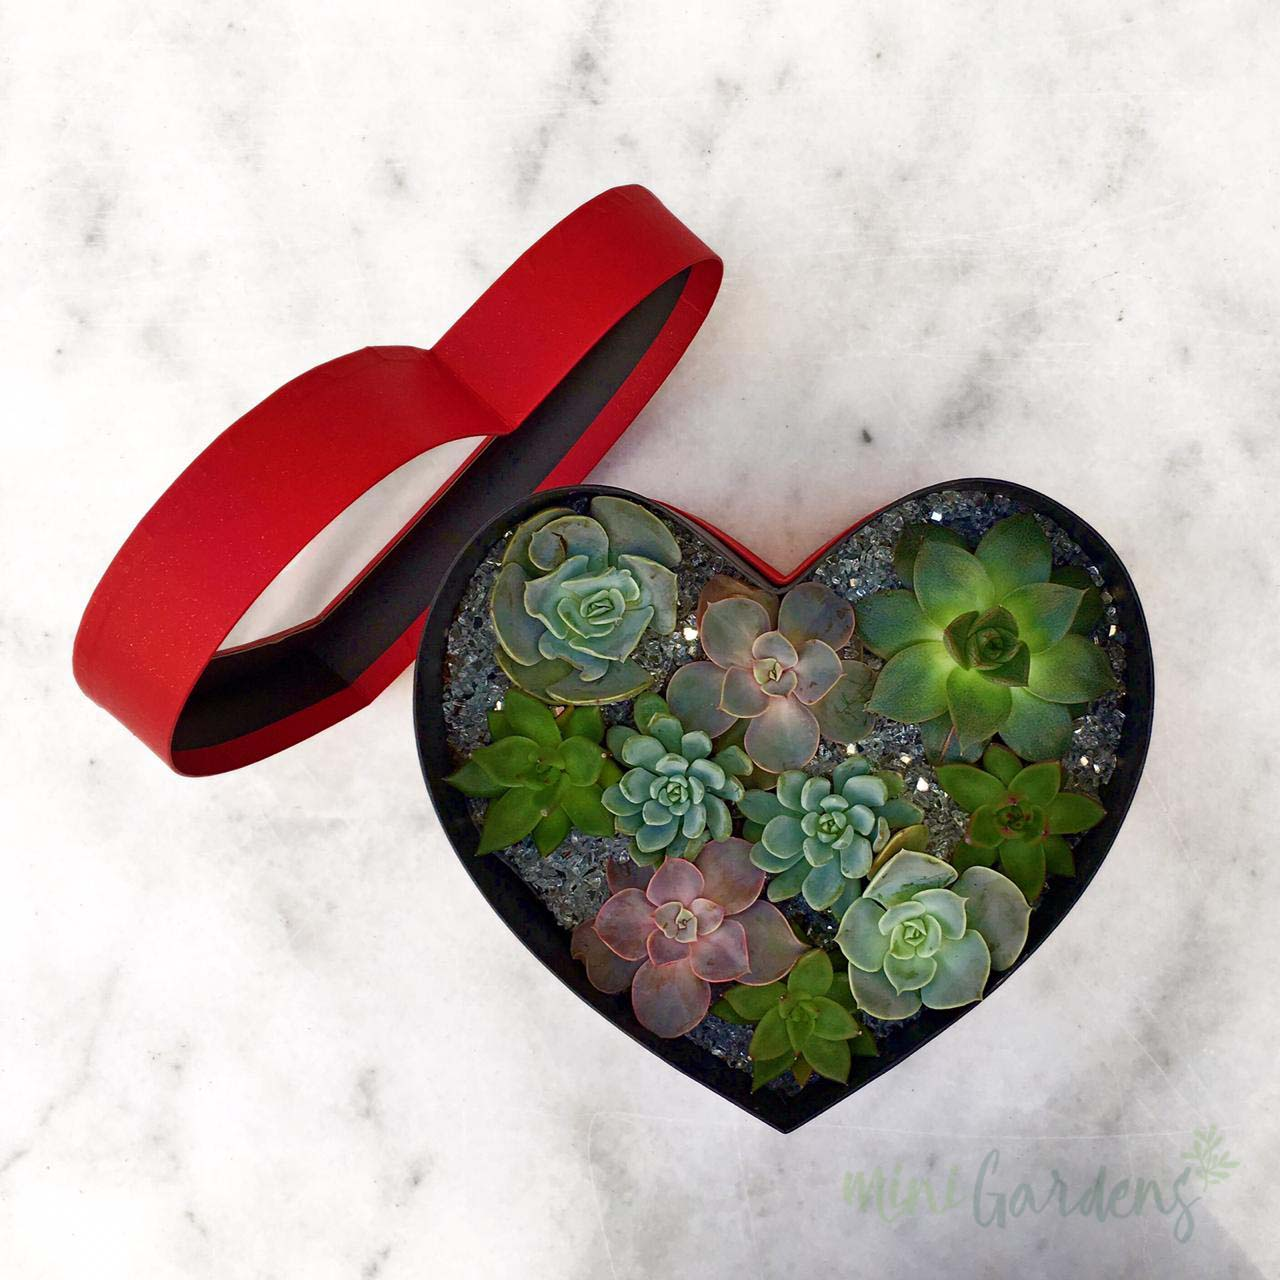 Heart Garden (Red) Order Online MiniGardens.ae  Delivery Dubai, Sharjah, UAE